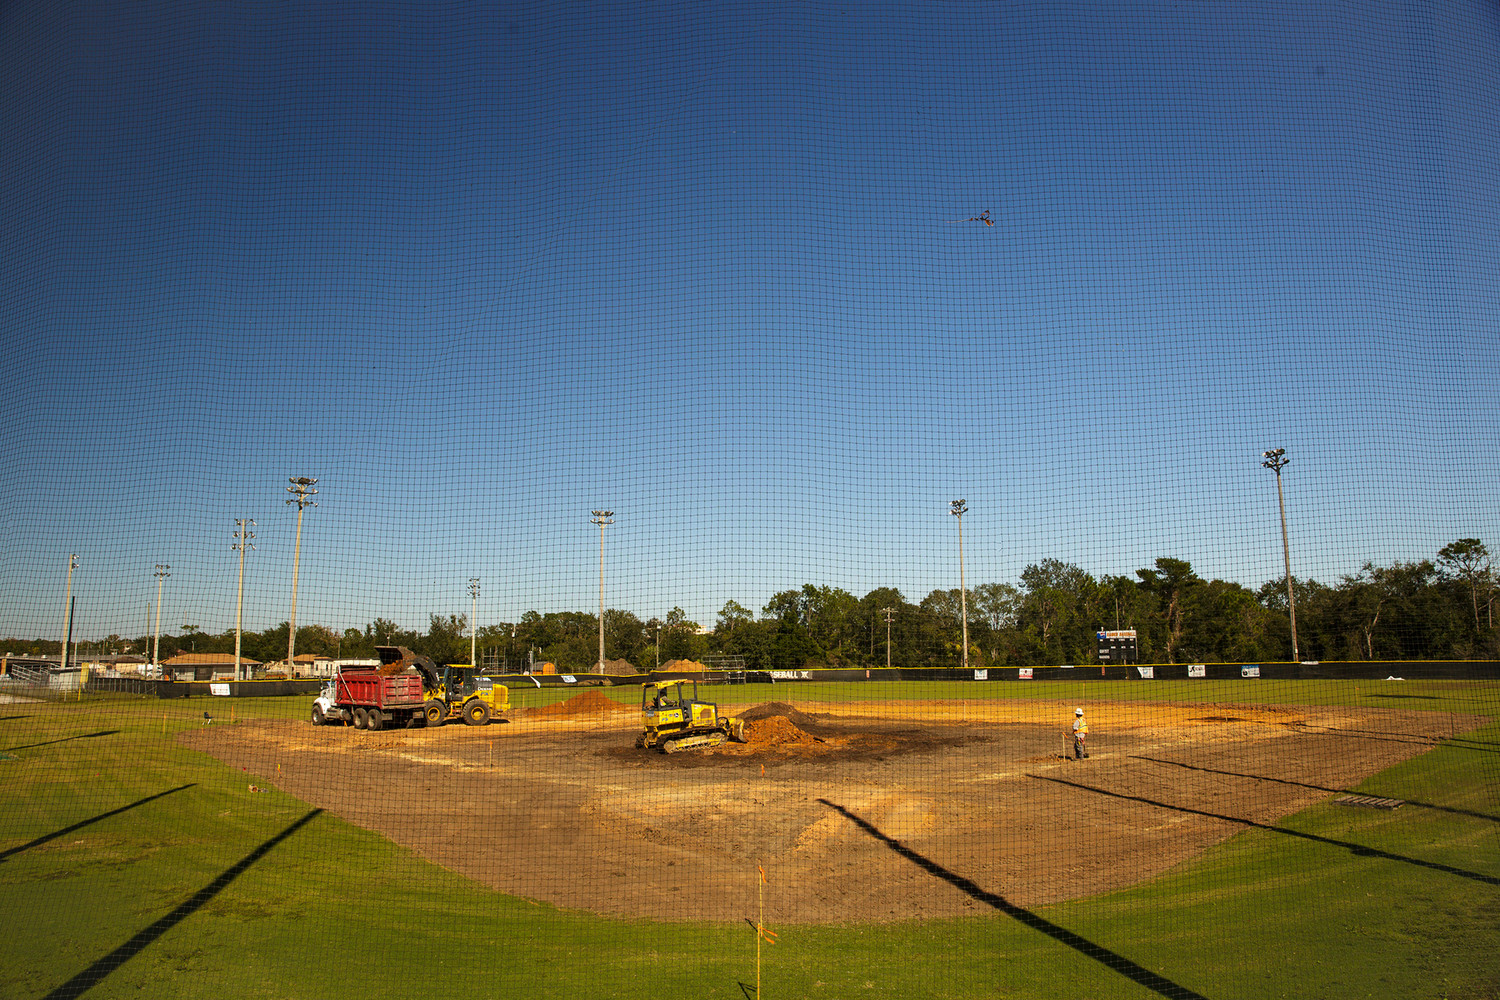 Dirt moving equipment from Petticoat-Schmitt levels out soil on the Orange Park High School baseball field Monday. The company's president, Ryan Schmitt, has donated his company's time and equipment to the project to help the school improve some drainage problems on the field.